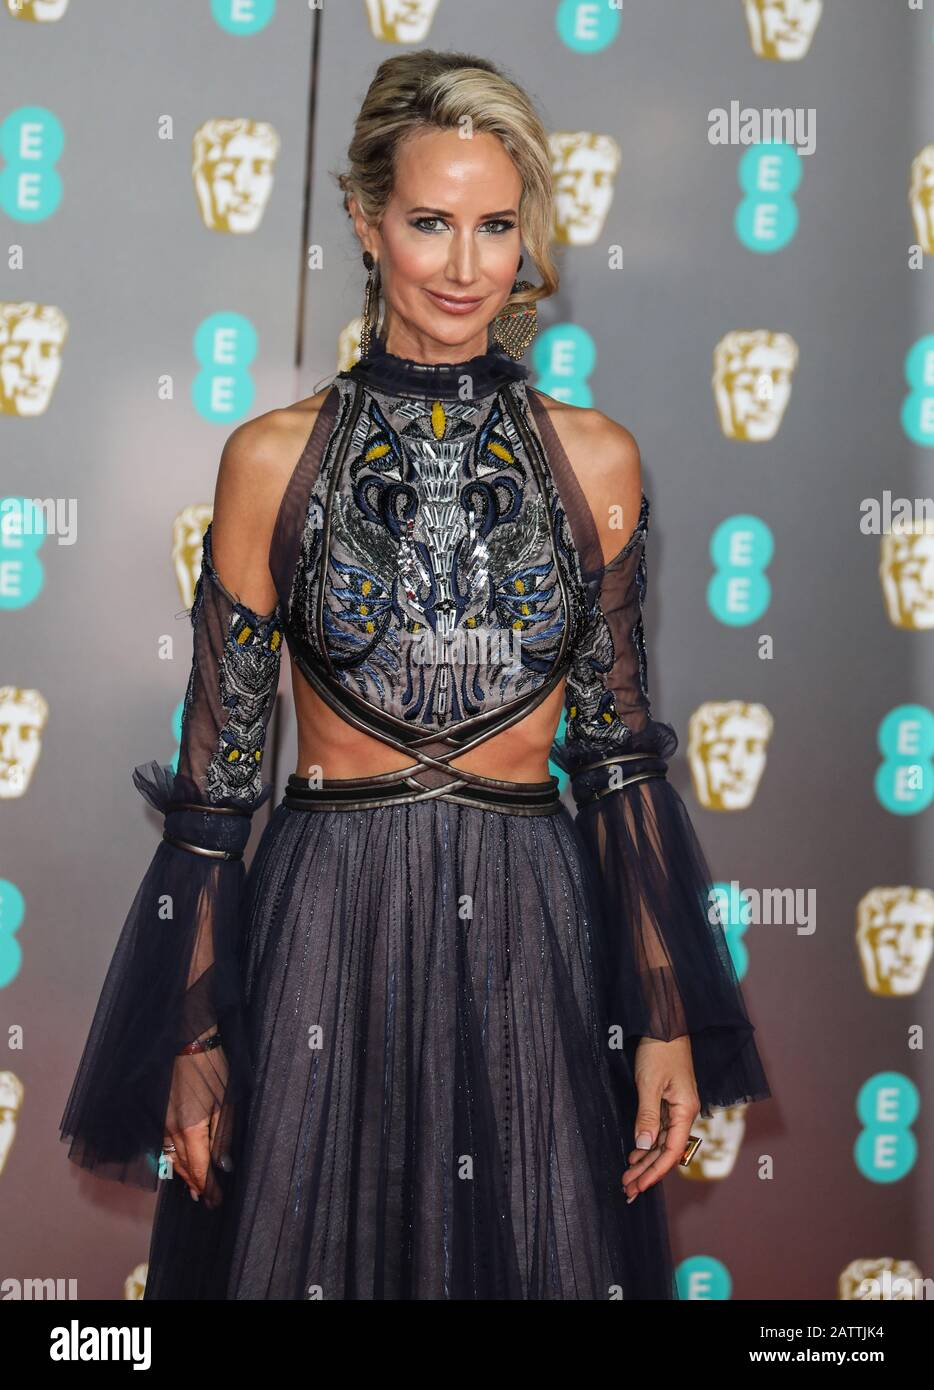 Uk 02nd Feb 2020 Lady Victoria Hervey Attending The British Academy Film Awards At The Royal Albert Hall In London Credit Sopa Images Limited Alamy Live News Stock Photo Alamy